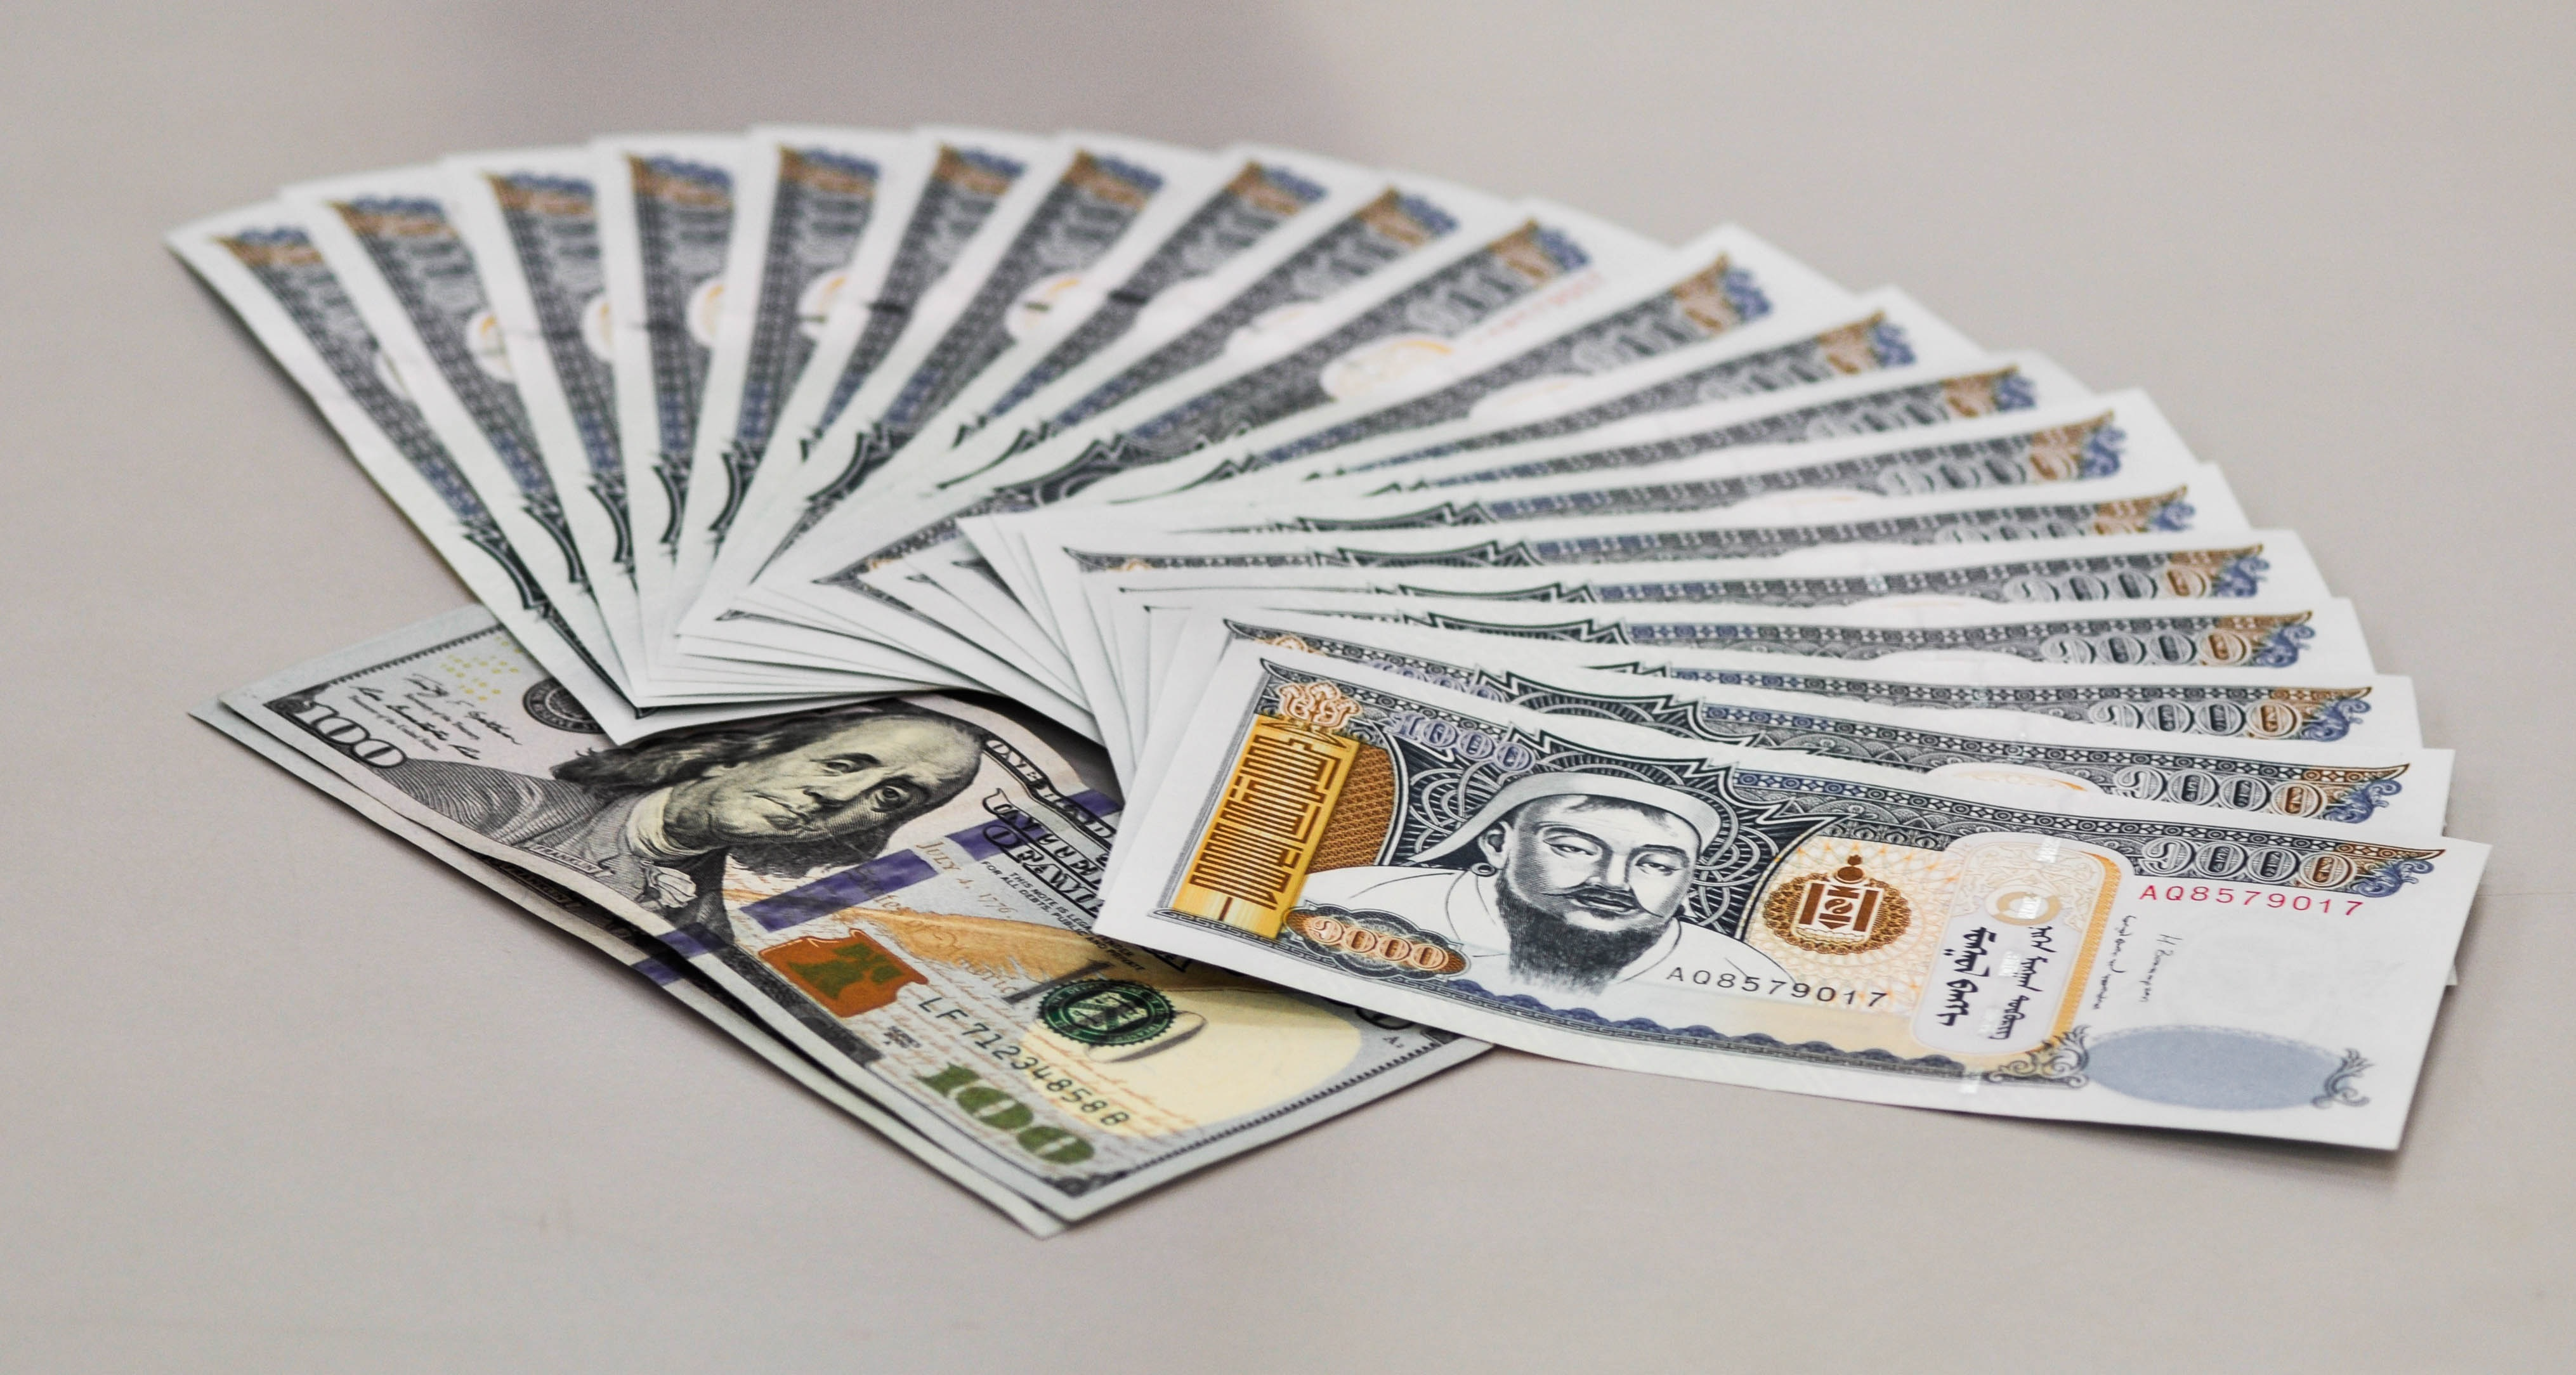 4061x2168 Free Images Wing, Money, Paper, Label, Brand, Cash, National